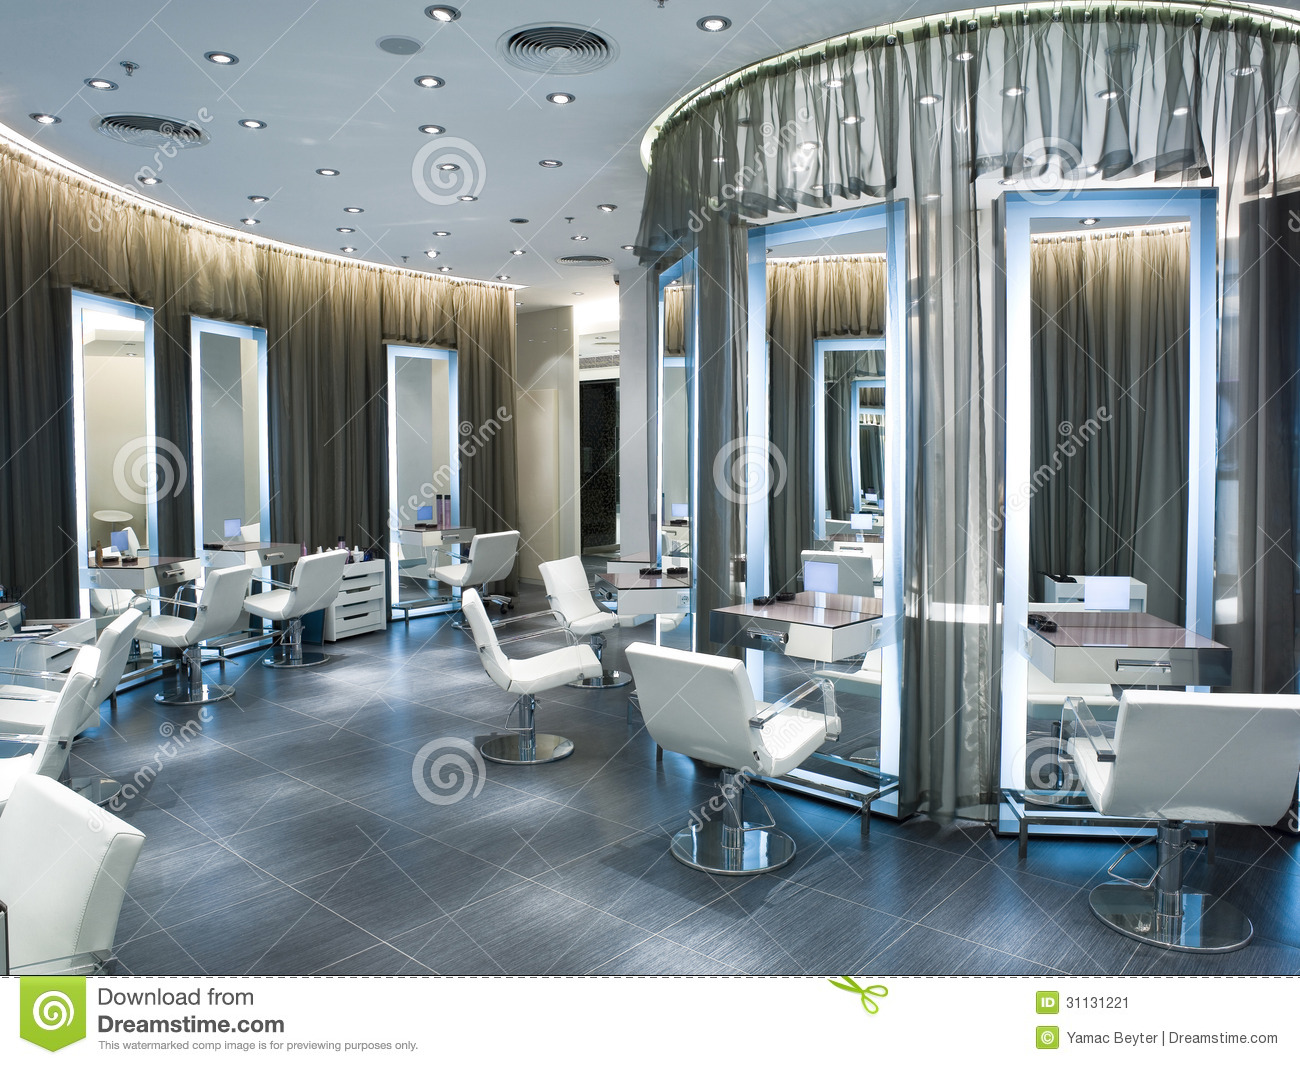 Beauty salon stock image Image of elegance clean style